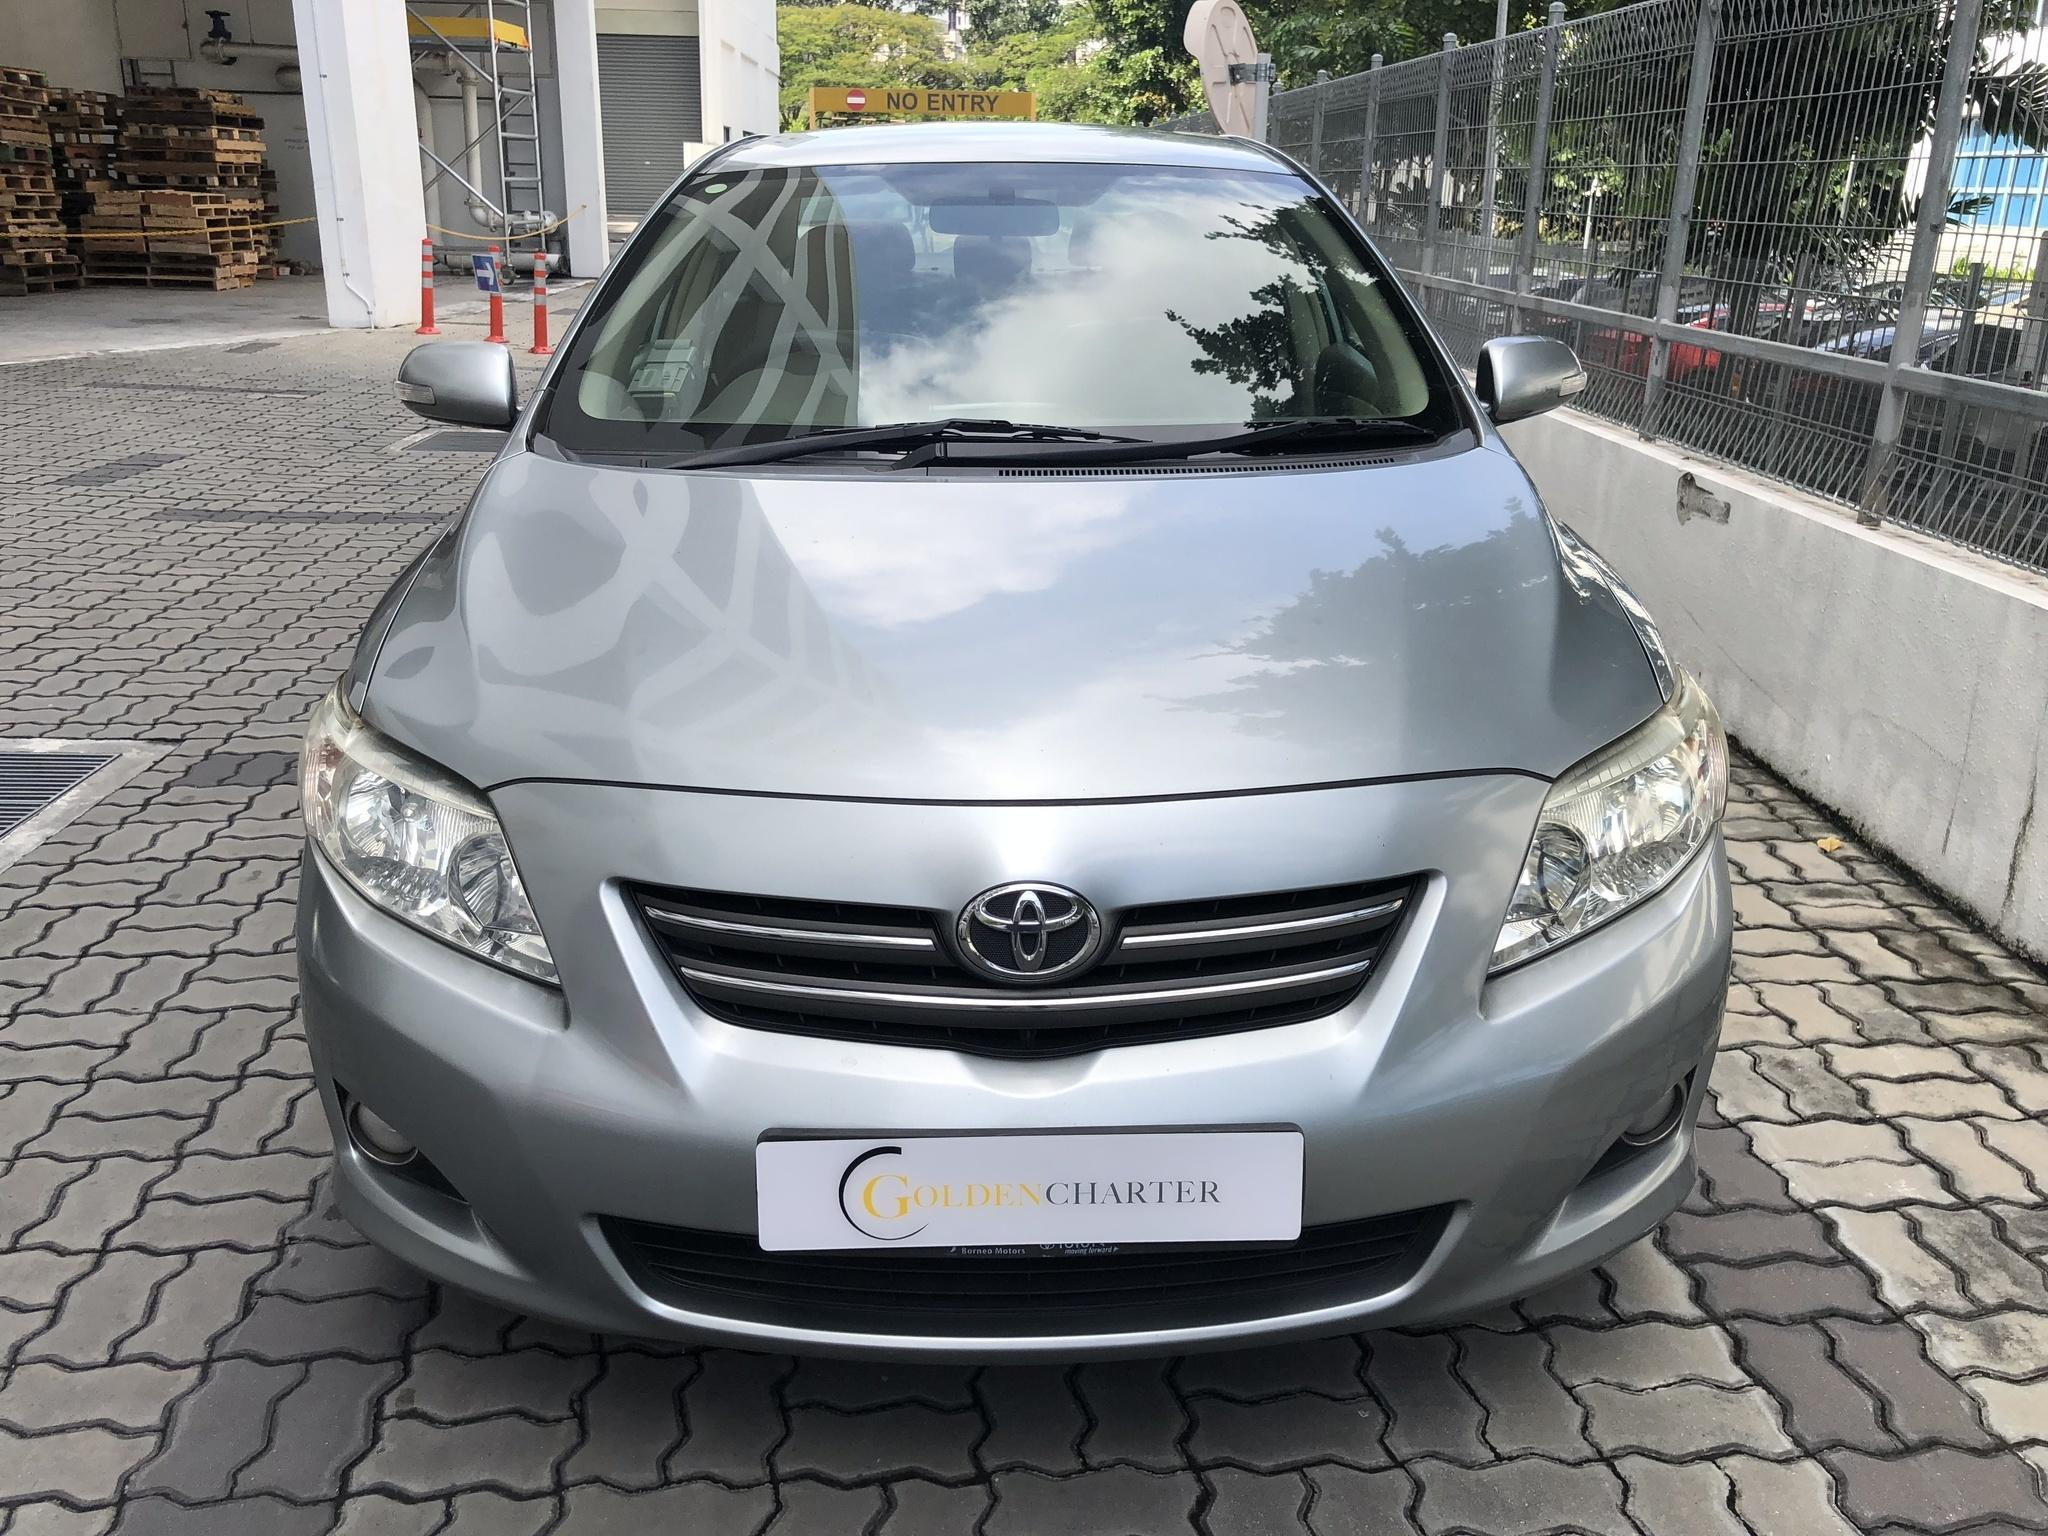 Toyota Altis $54 Toyota Vios Wish Altis Car Axio Premio Allion Camry Estima Honda Jazz Fit Stream Civic Cars Hyundai Avante Mazda 3 2 For Rent Lease To Own Grab Rental Gojek Or Personal Use Low price and Cheap Cars